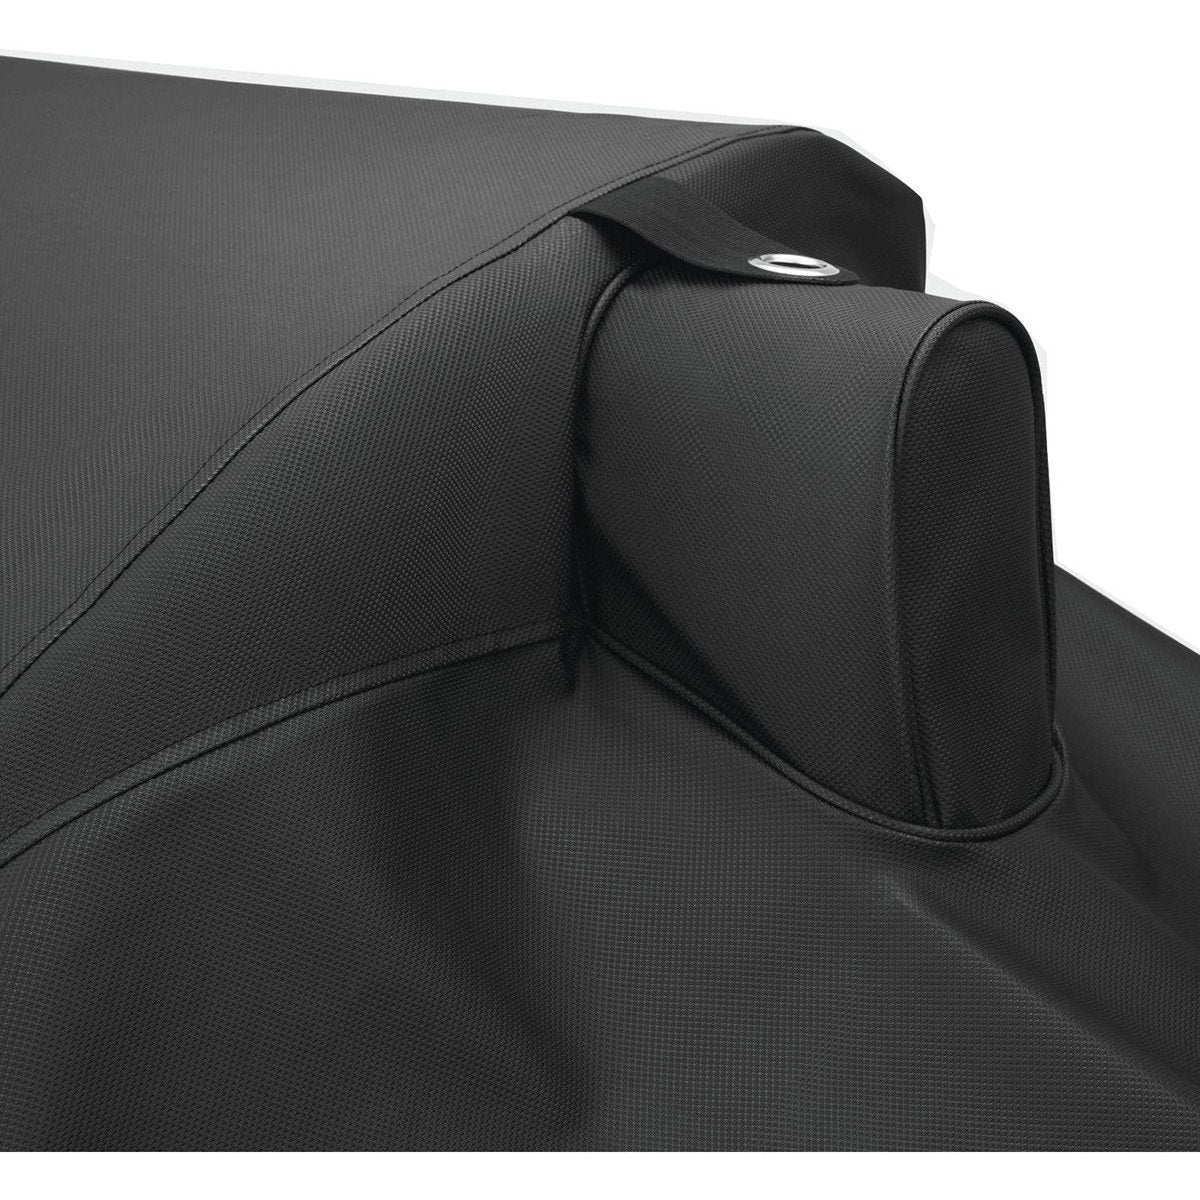 "DCS Grill Cover for 48"" On-Cart w/ Sideburner"